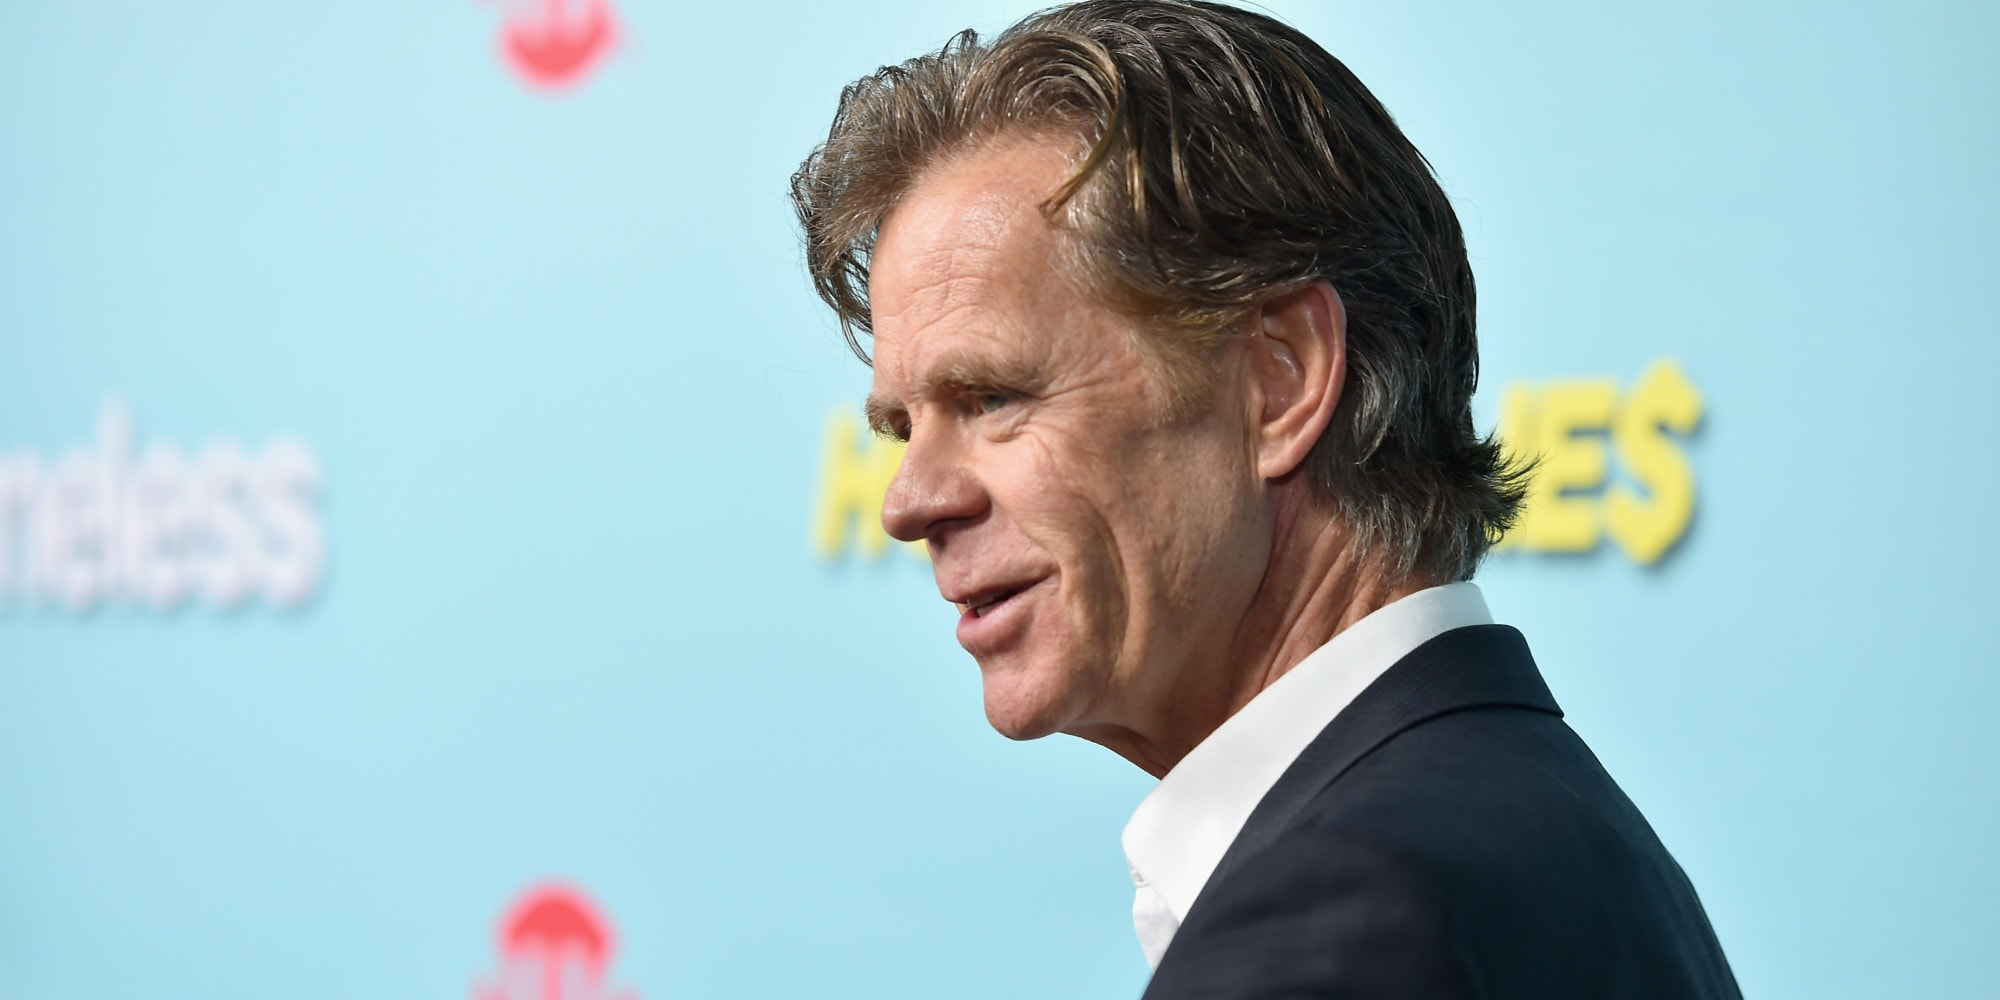 William Macy Backgrounds